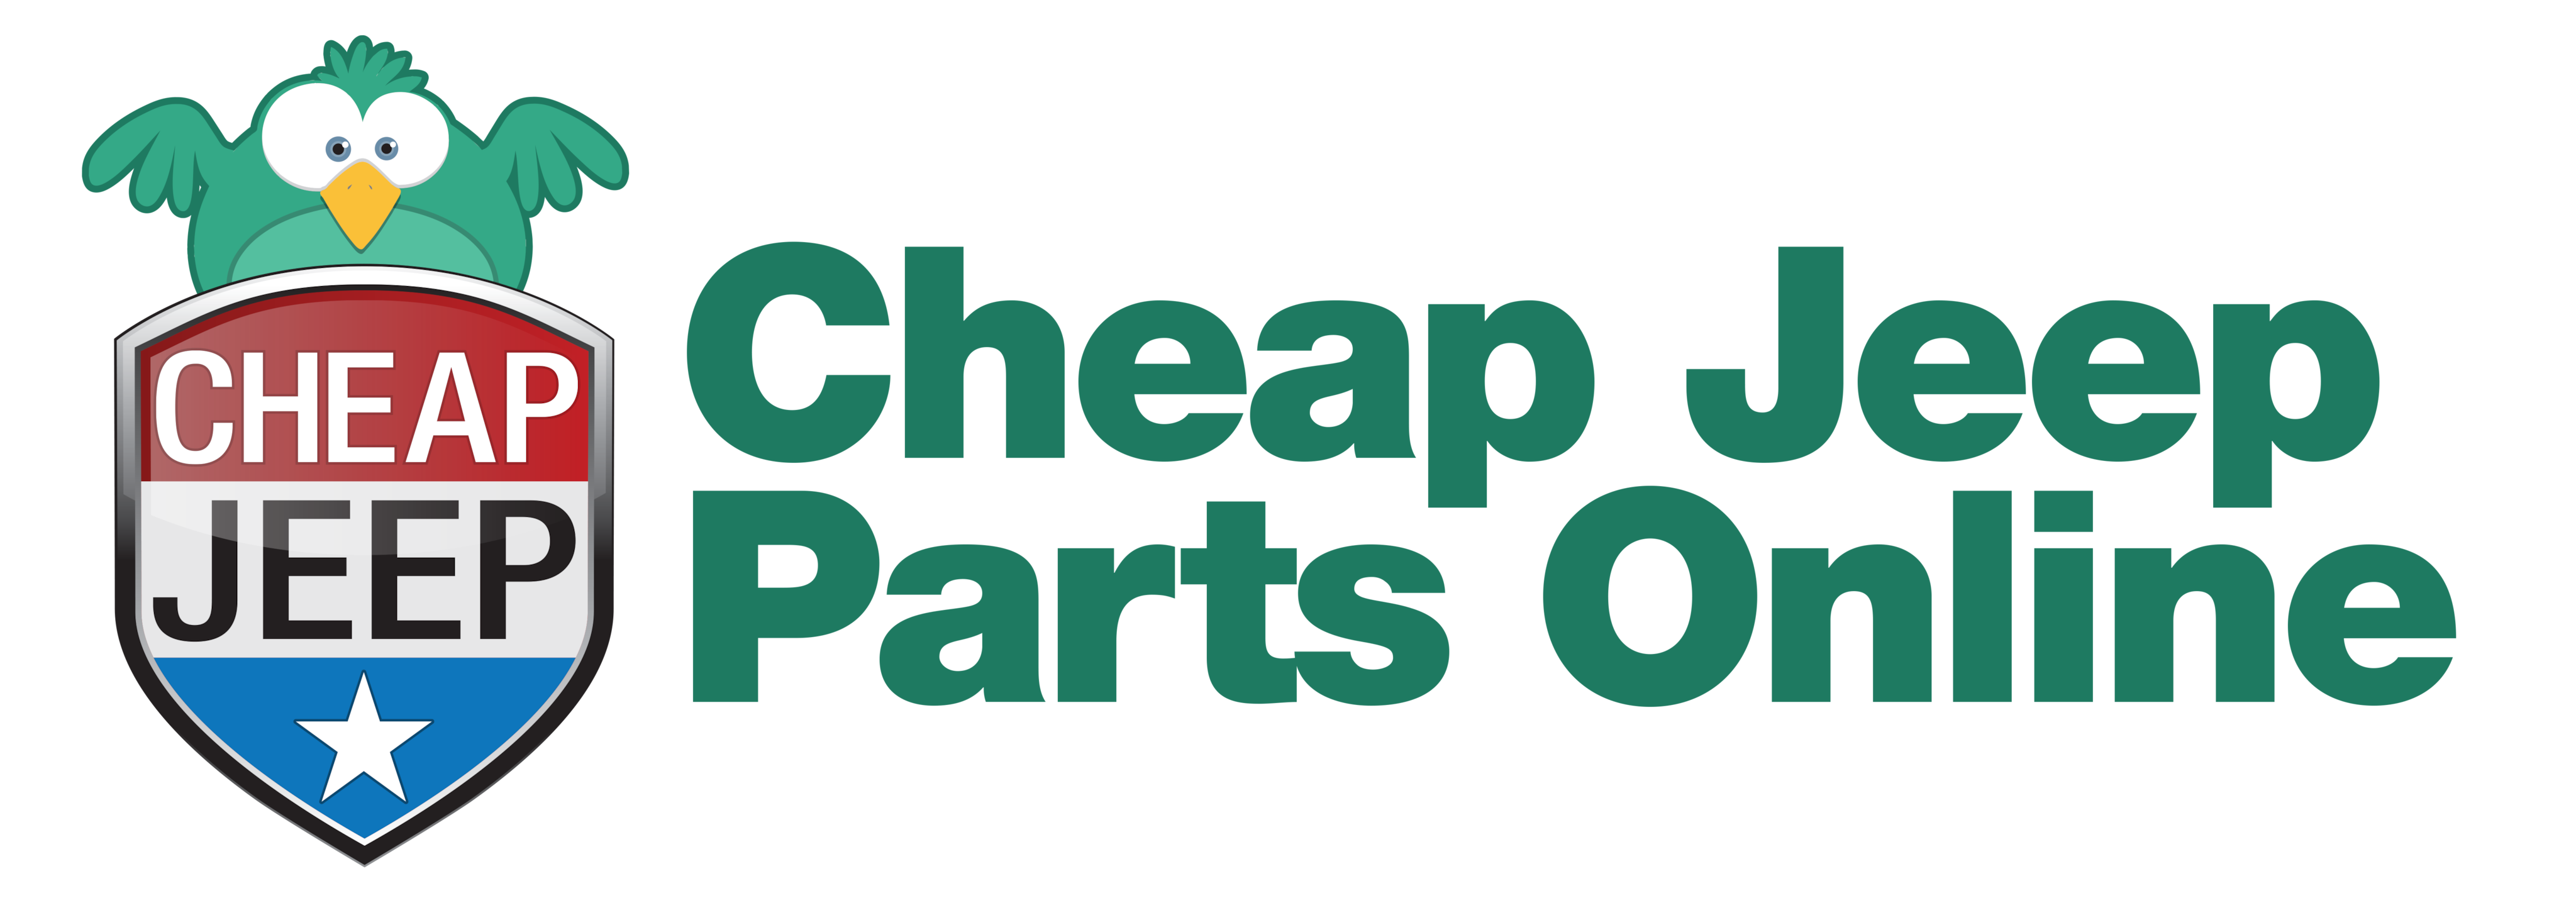 order cheap jeep parts in Tucson at Larry H. Miller Chrysler Jeep of Tucson